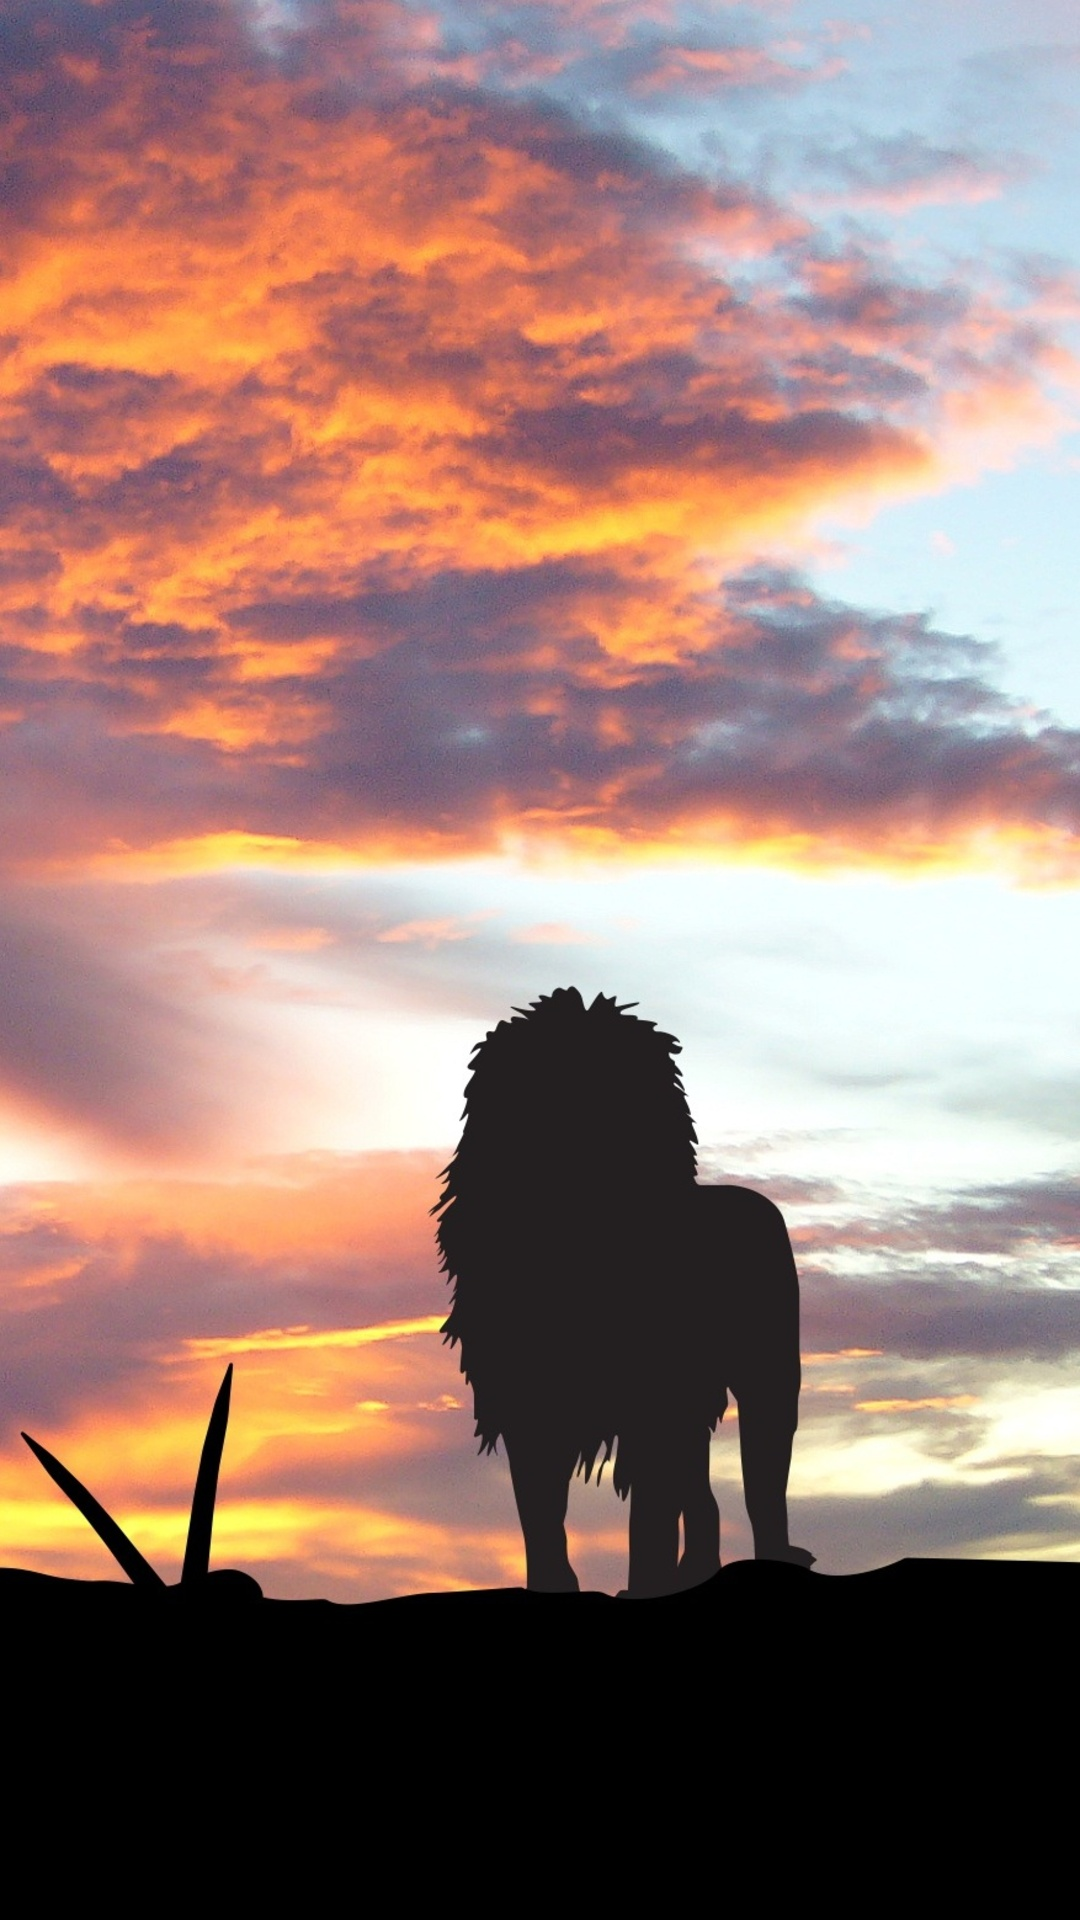 1080x1920 Lions Africa Silhouette Sunset Iphone 7 6s 6 Plus Pixel